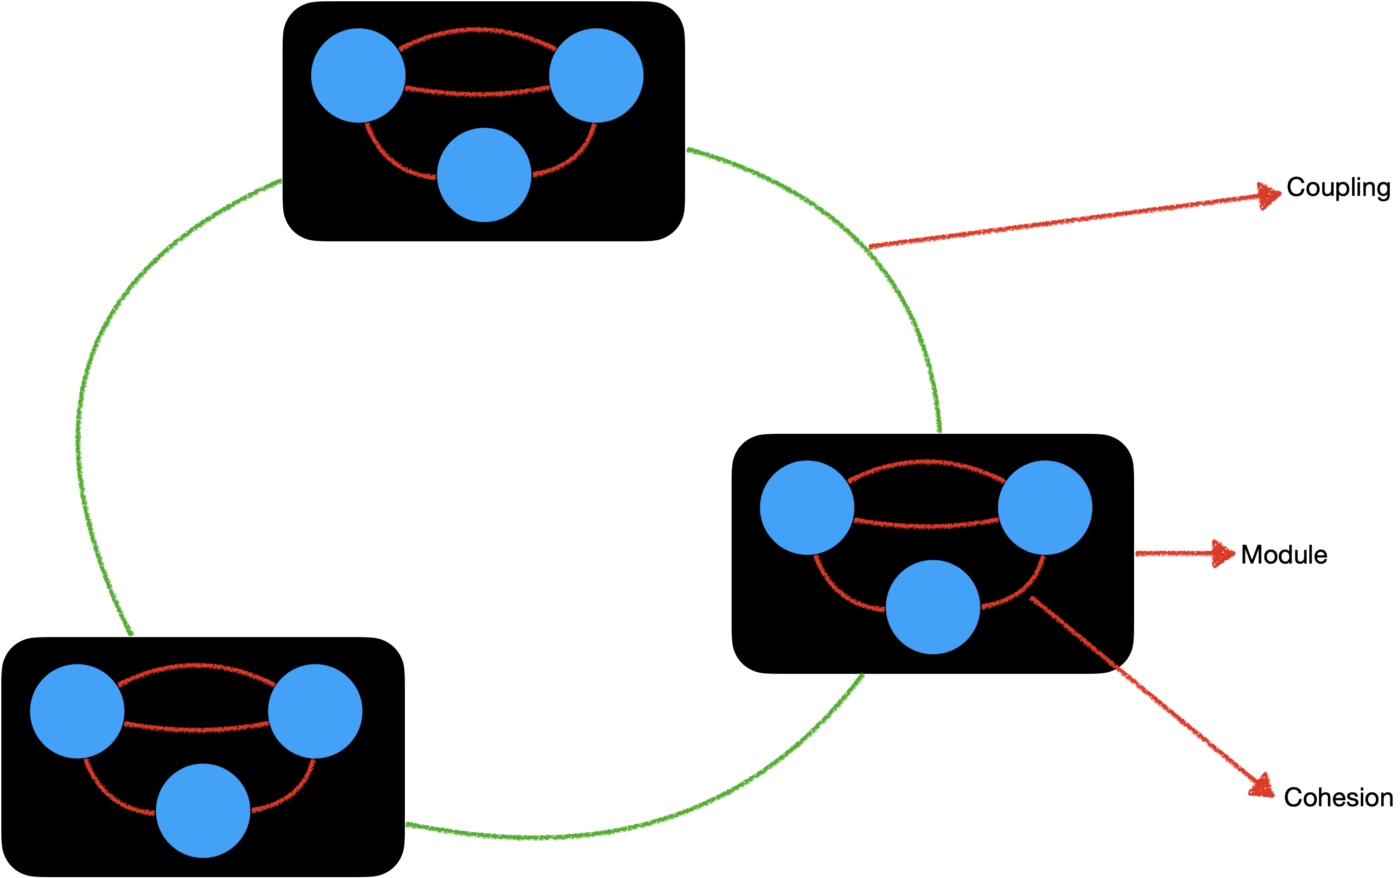 Diagram showing dependence on outside or external coupling.